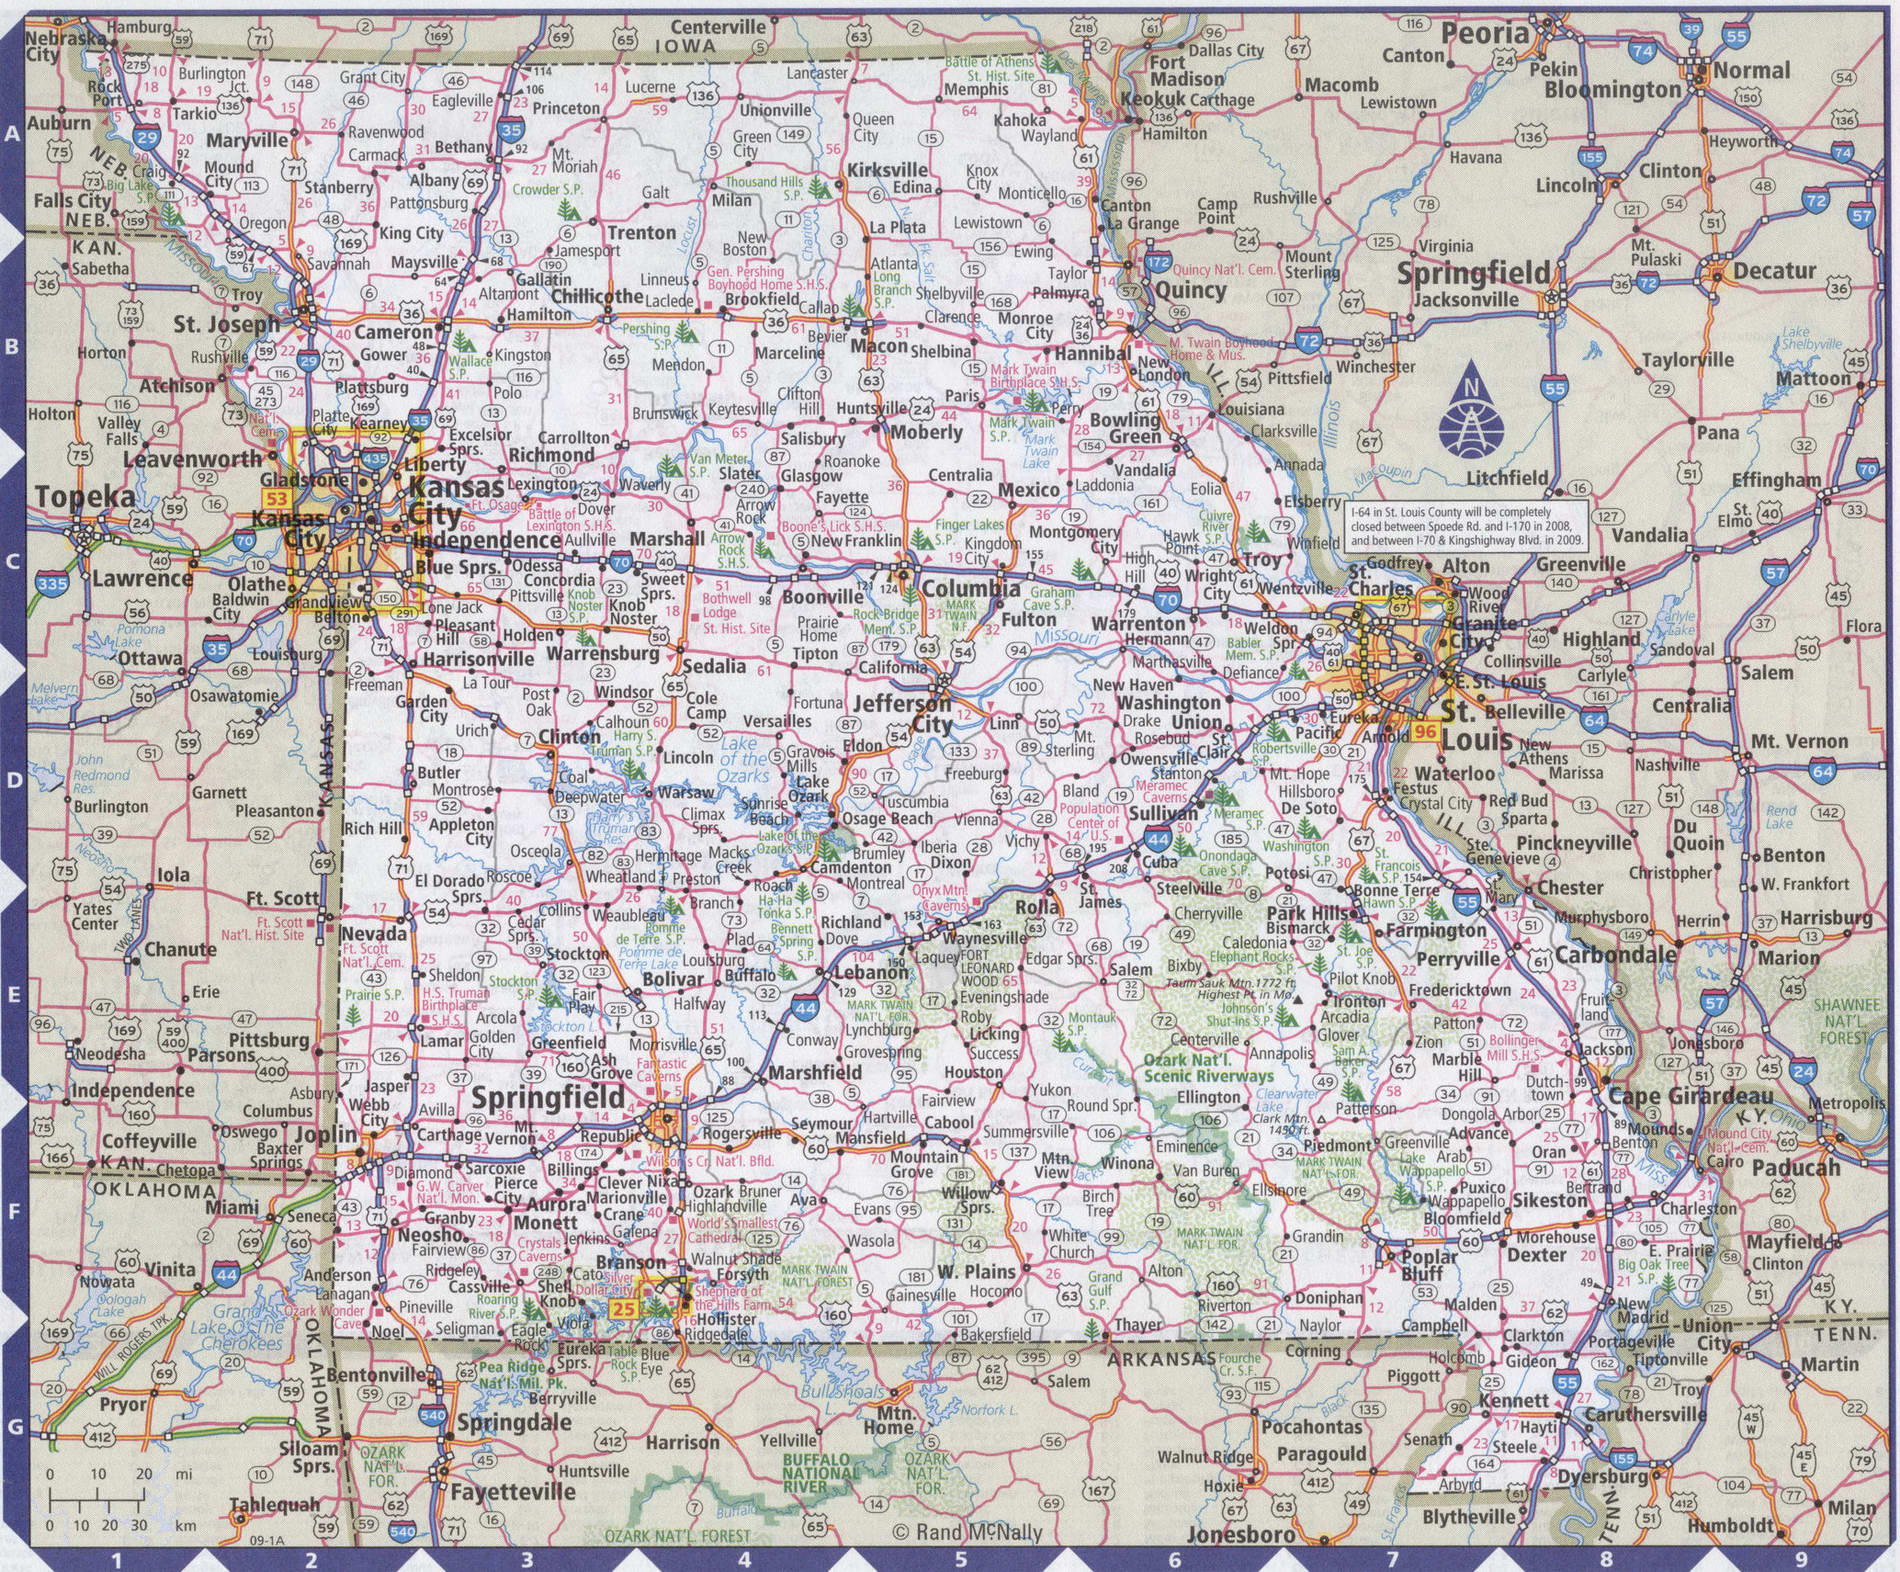 Roads map of Missouri state